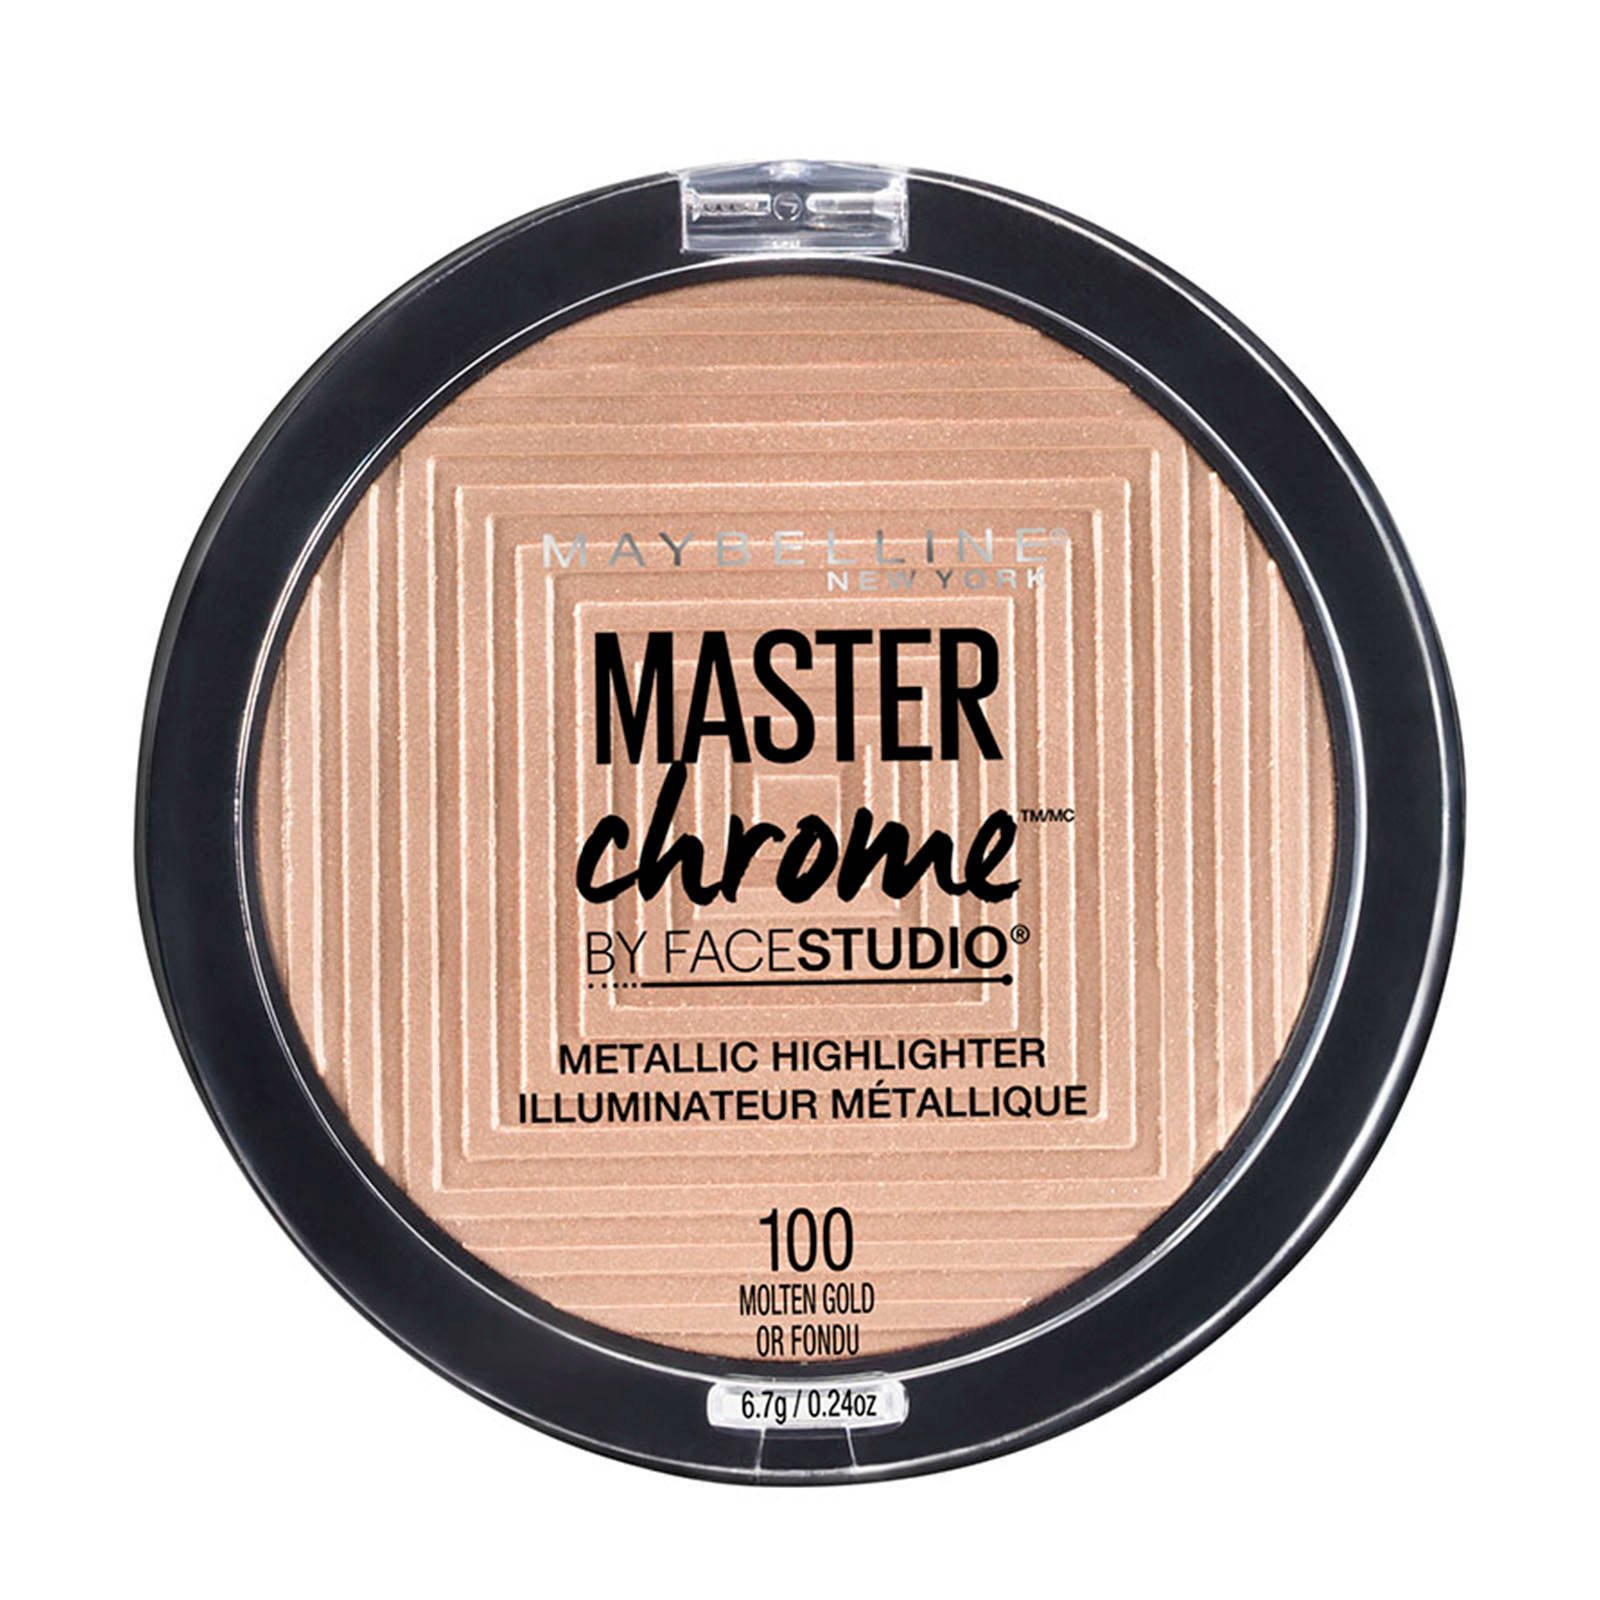 Maybelline Master Chrome – 100 Molten Gold - Highlighter